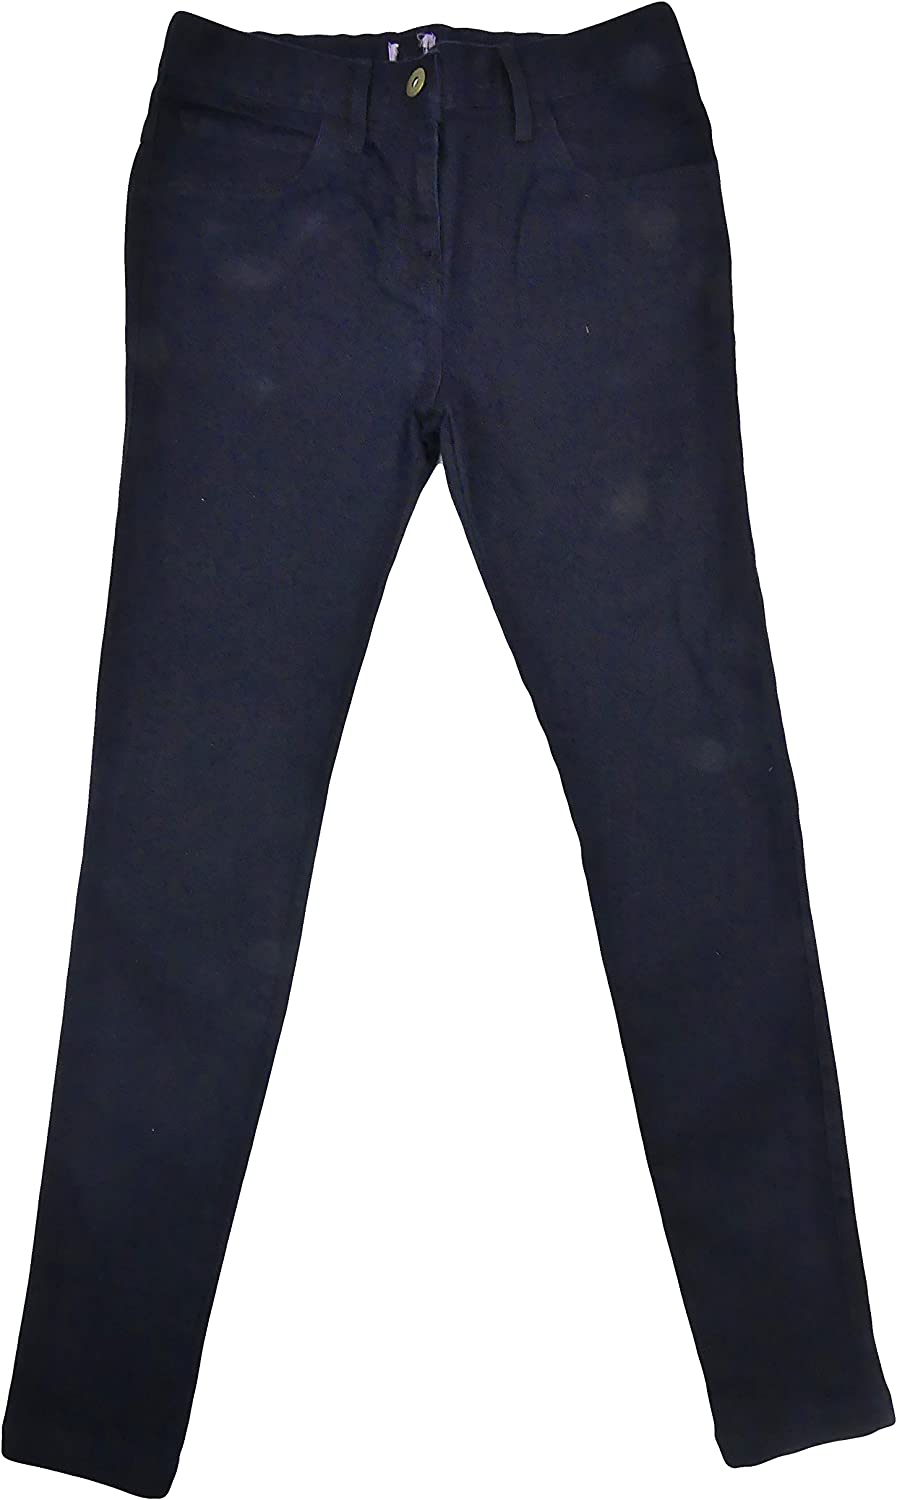 Ex-Store Girls Dark Blue Navy Jeans Trousers 10-11 Years and 11-12 Years